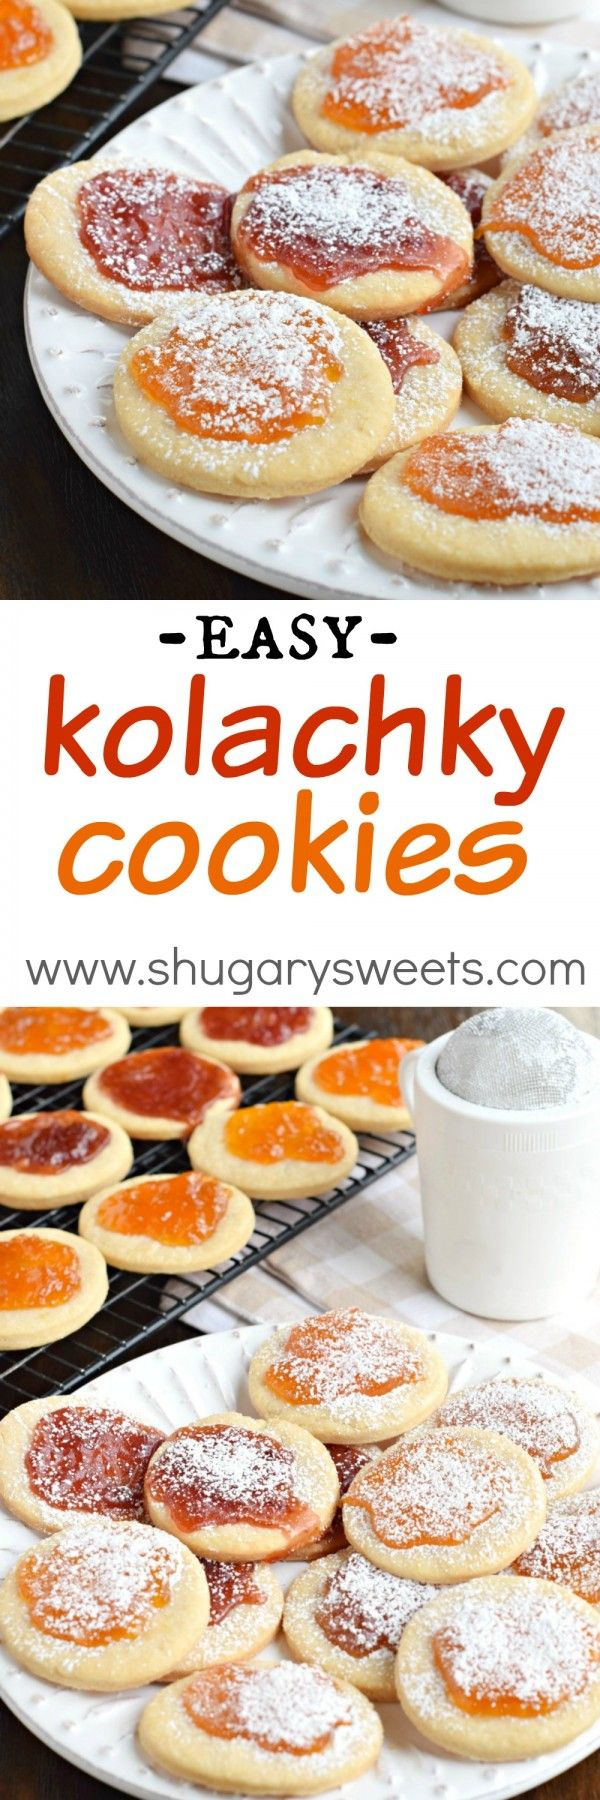 These Kolachky Cookies have a melt in your mouth cookie base and are topped with sweet preserves. Don't forget the extra powdered sugar! Bake for your cookie exchange!